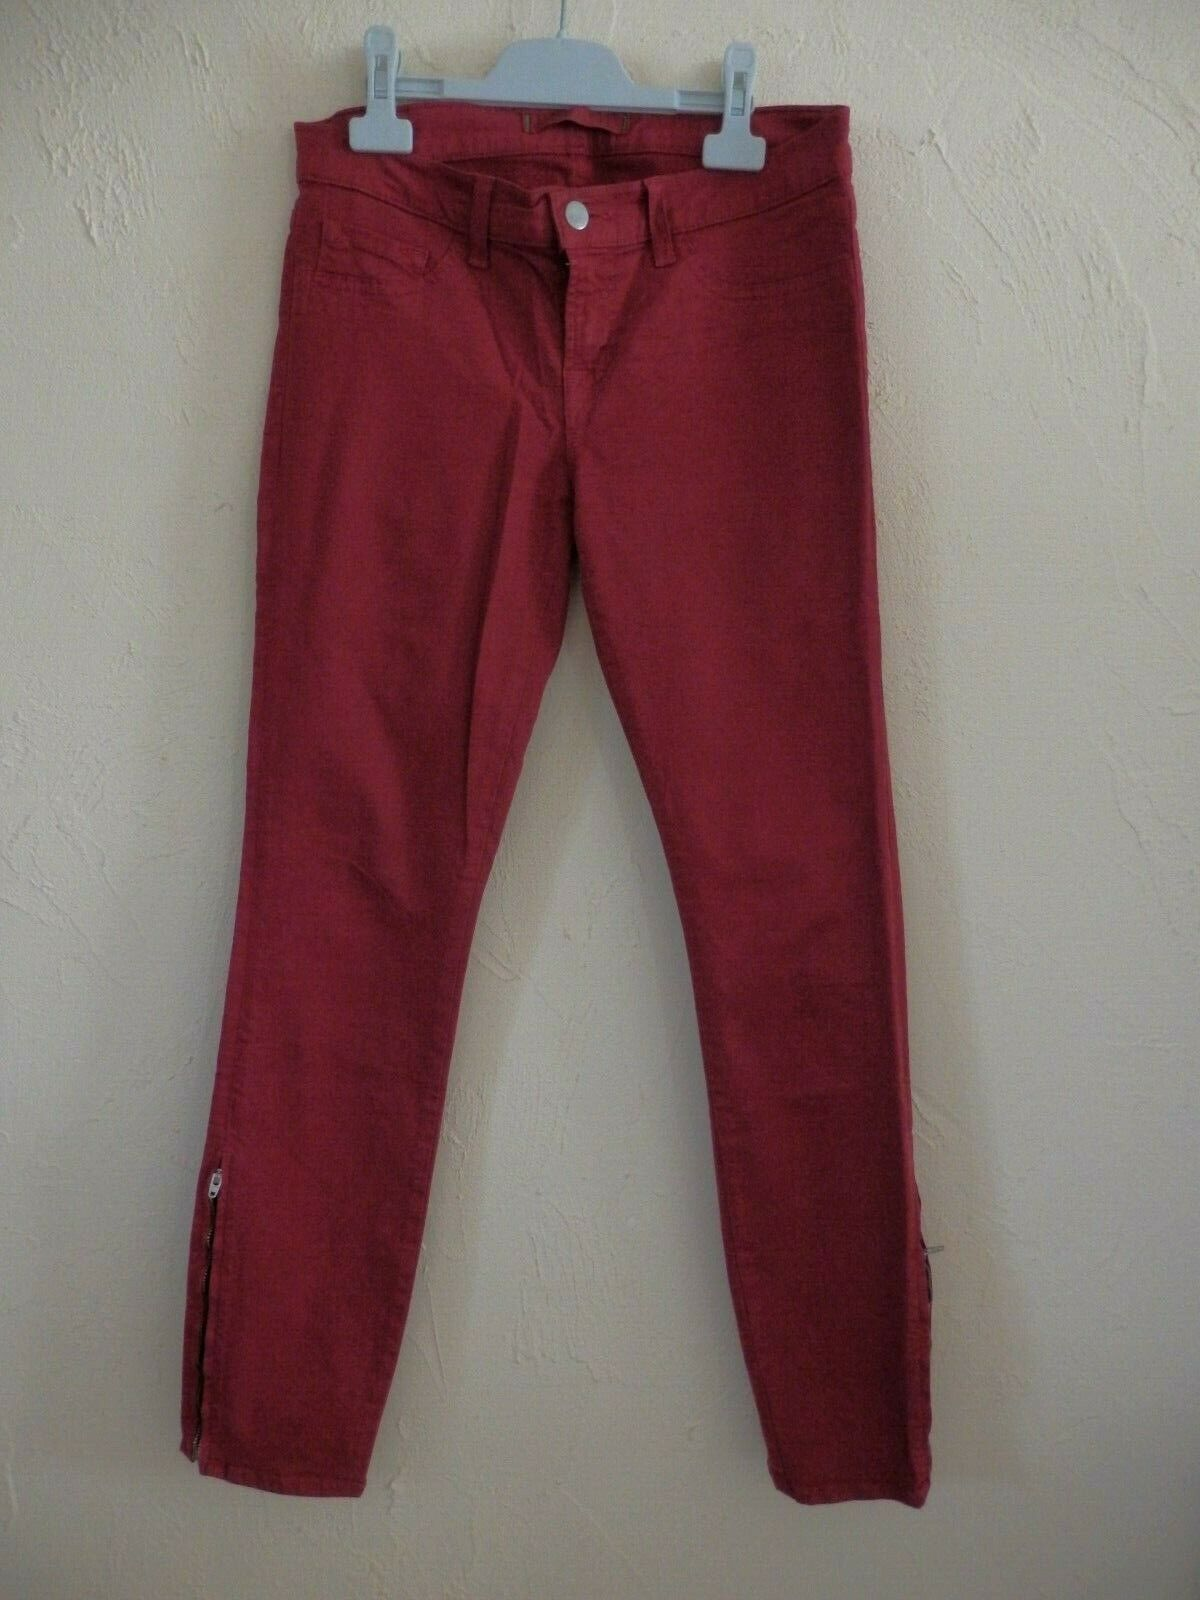 J BRAND - SKINNY JEANS - RED - T.27us either 37fr - AUTHENTIC